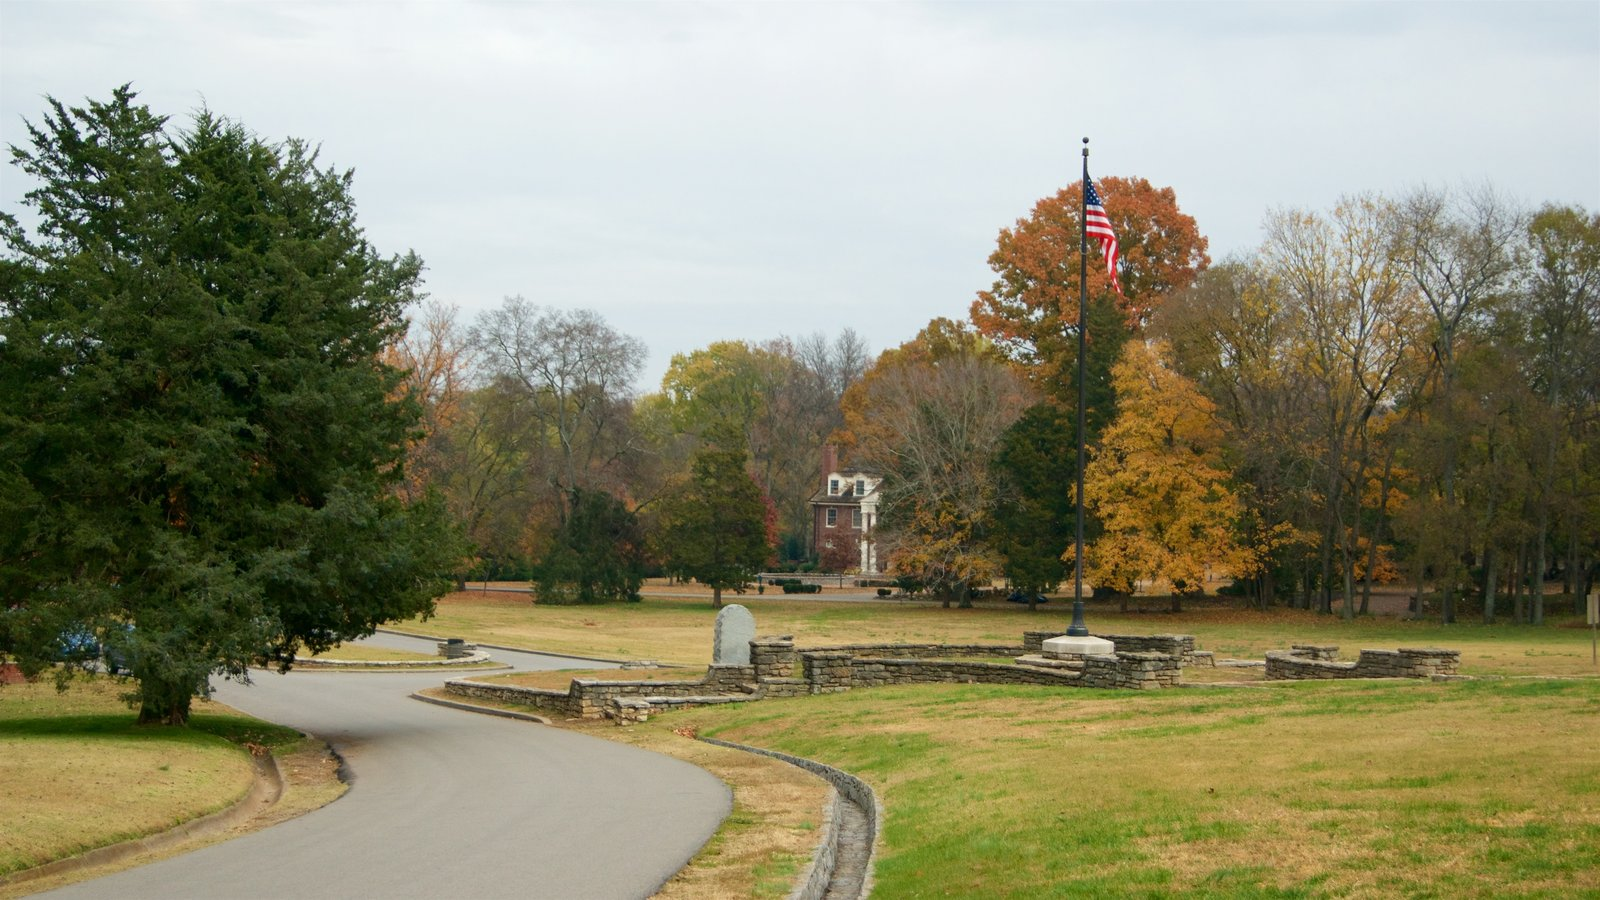 Edwin and Percy Warner Parks which includes a garden and autumn leaves